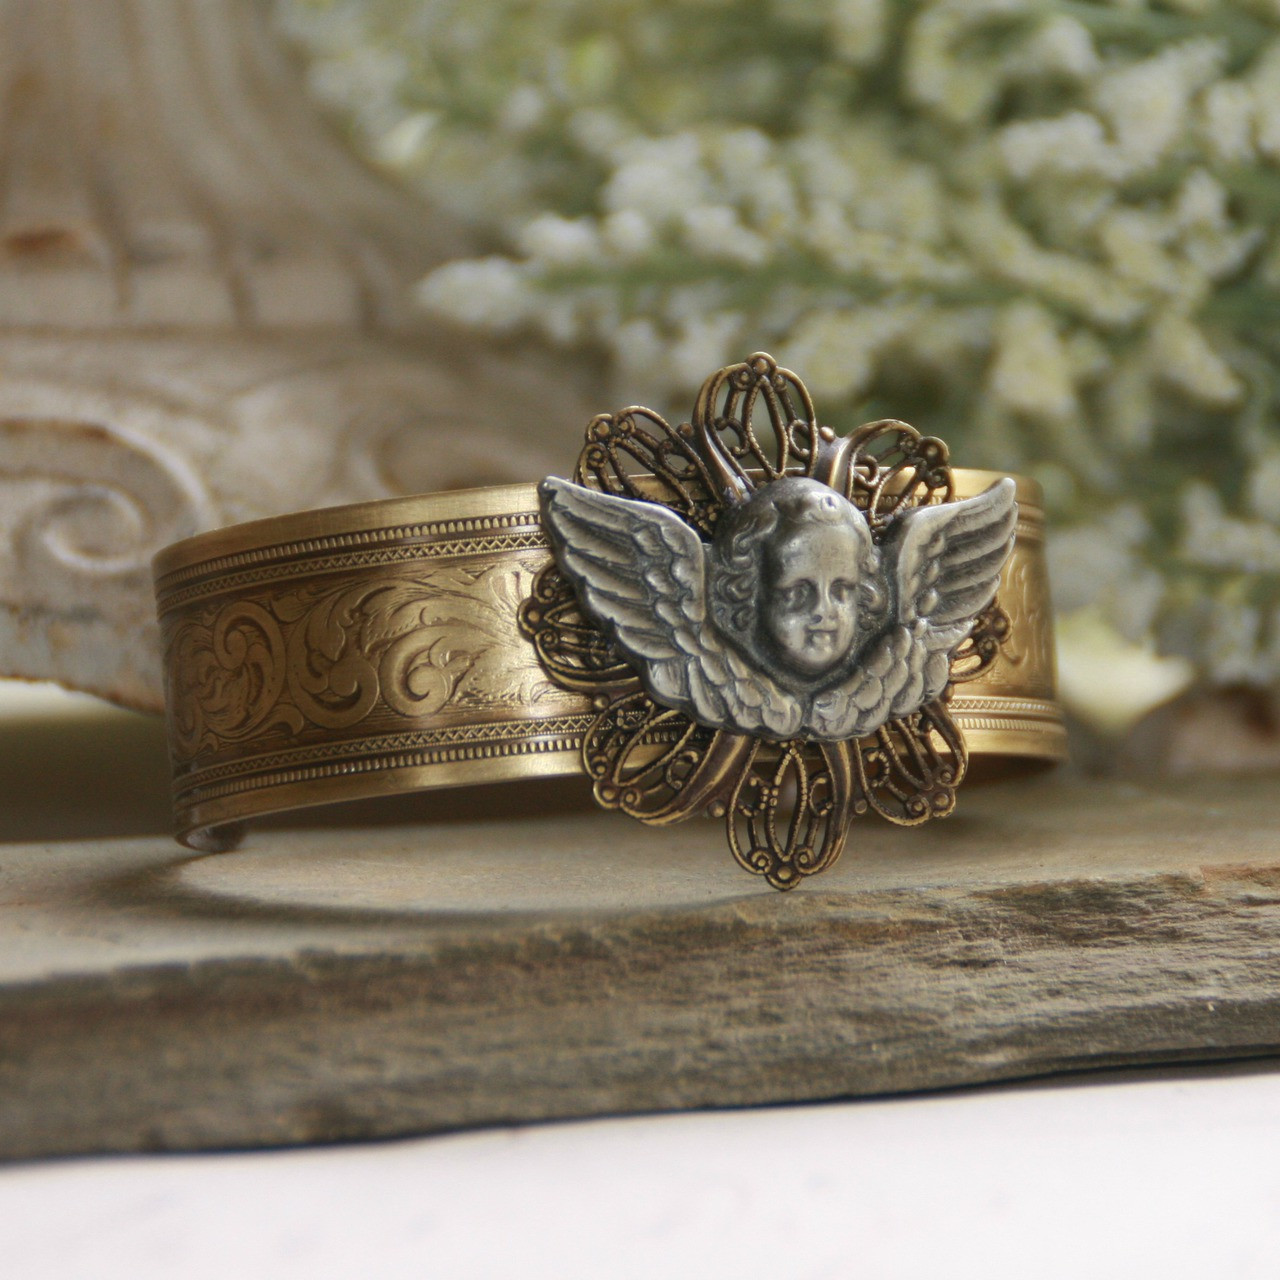 ART-144 A Sweet Angel to Watch Over You Cuff Bracelet